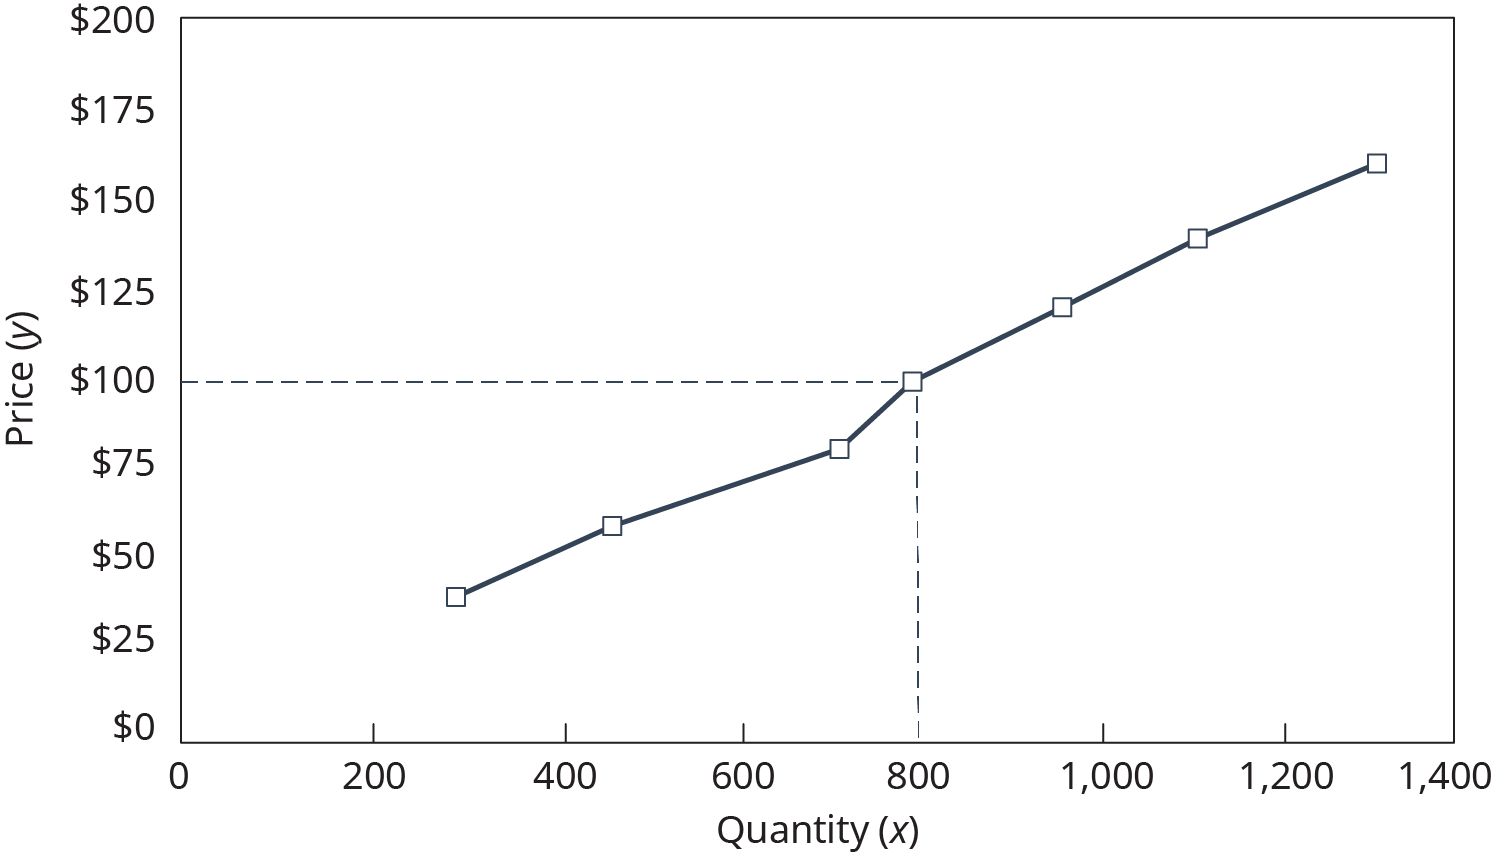 The horizontal x axis is labeled quantity, and is labeled from left to right, 0 to 1,400 in increments of 200. The vertical y axis is labeled price, and is labeled, from bottom to top, 0 dollars to 200 dollars in increments of $25. Points are plotted on the graph, and connected with a solid line. The points are plotted at approximately 275, $40, and 450, $60, and 700, $80, and 800, $100, and 975, $120, and 1100, $135, and 1325, $155. A dashed horizontal line extends from 100 dollars on the y axis, and a vertical dashed line extends from 800 on the x axis and meet at the plotted point 800, $100.